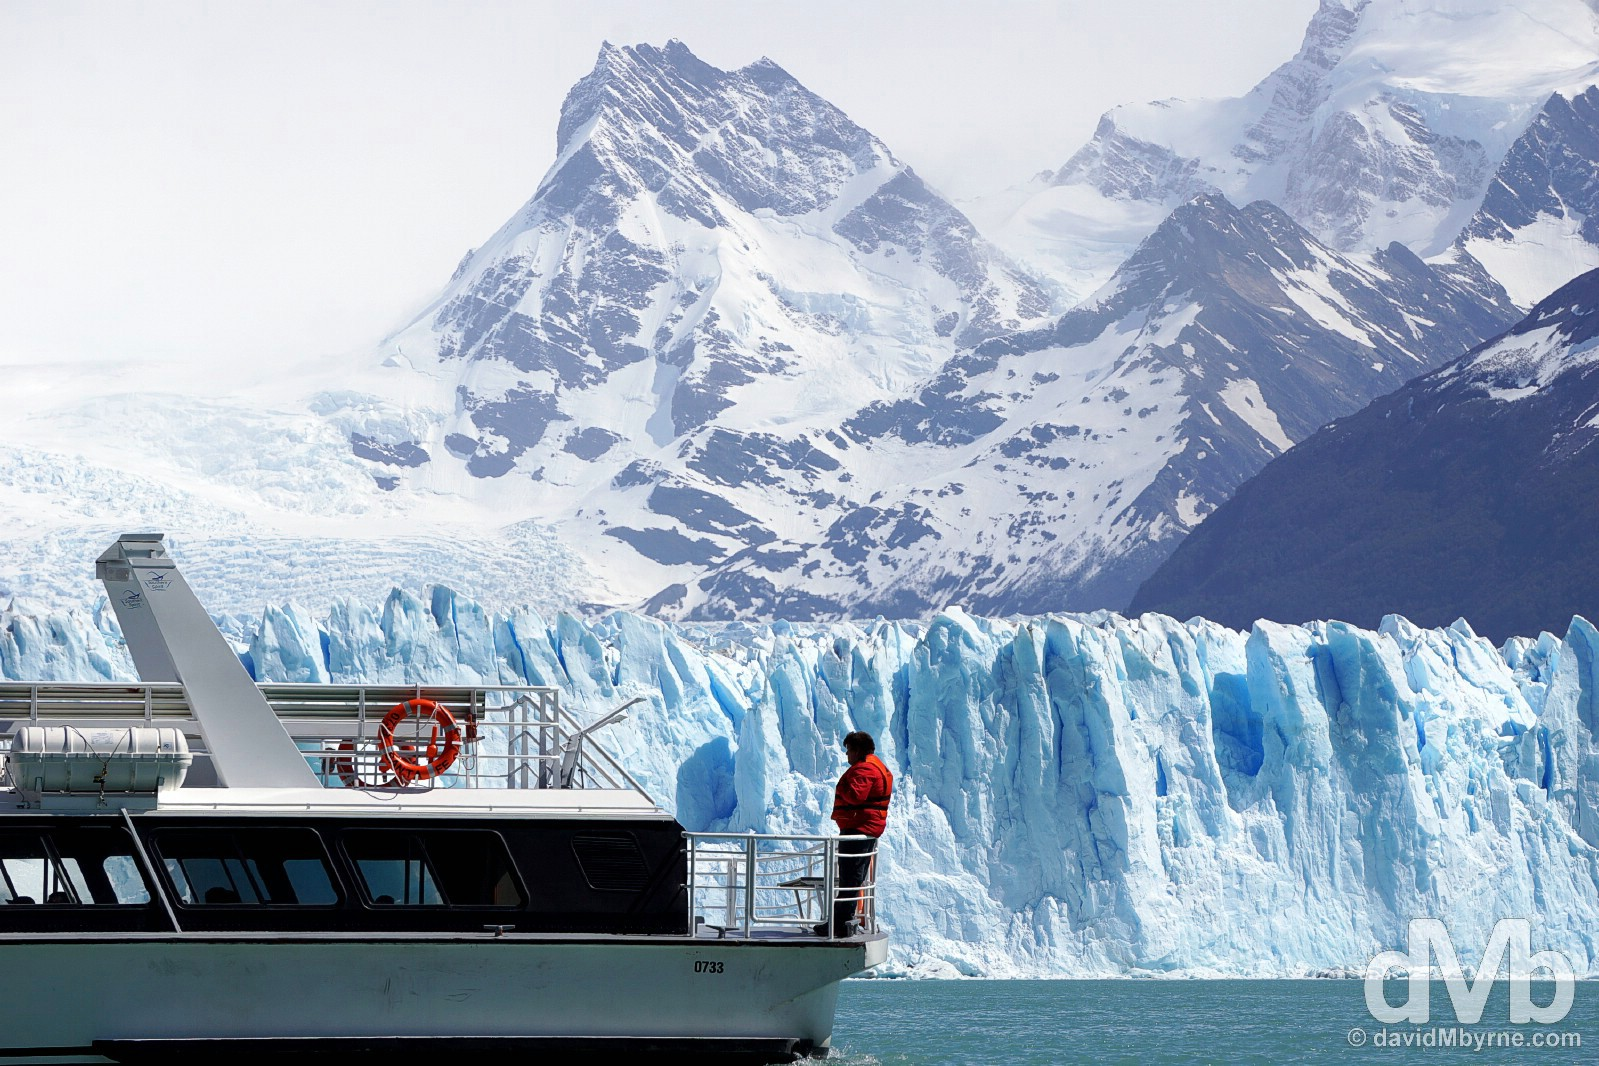 Boating on Lago Argentino in view of the Perito Moreno Glacier in Parque Nacional Los Glaciares, Patagonia, Argentina. November 2, 2015.